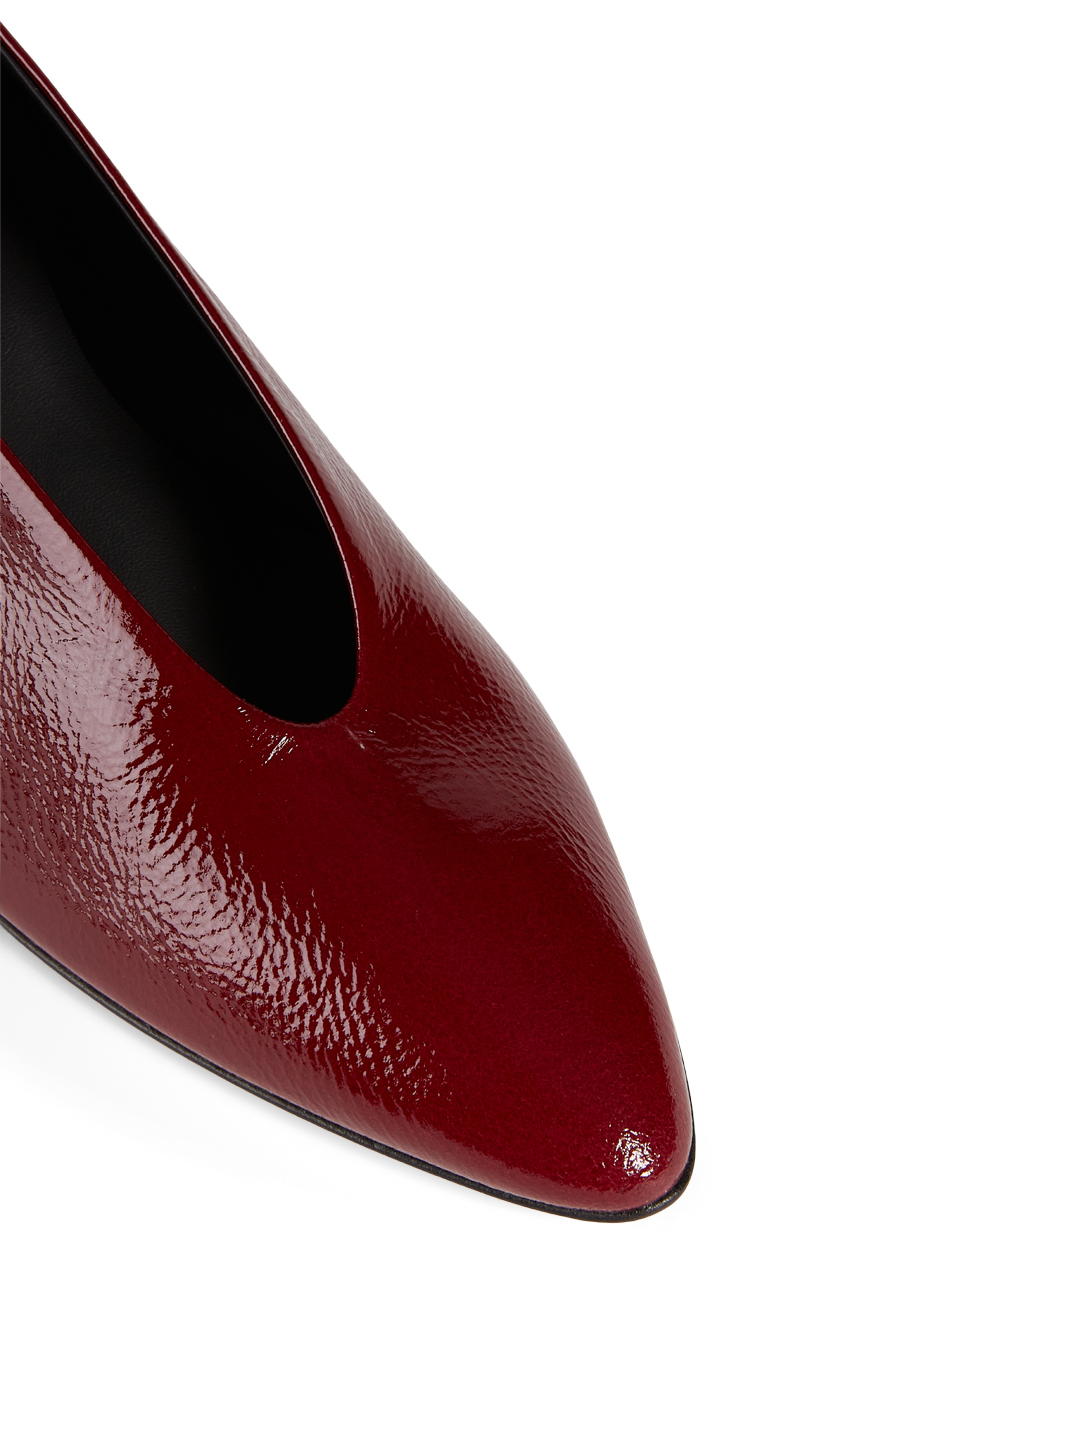 GRAY MATTERS Gemma Patent Leather Pumps Women's Red